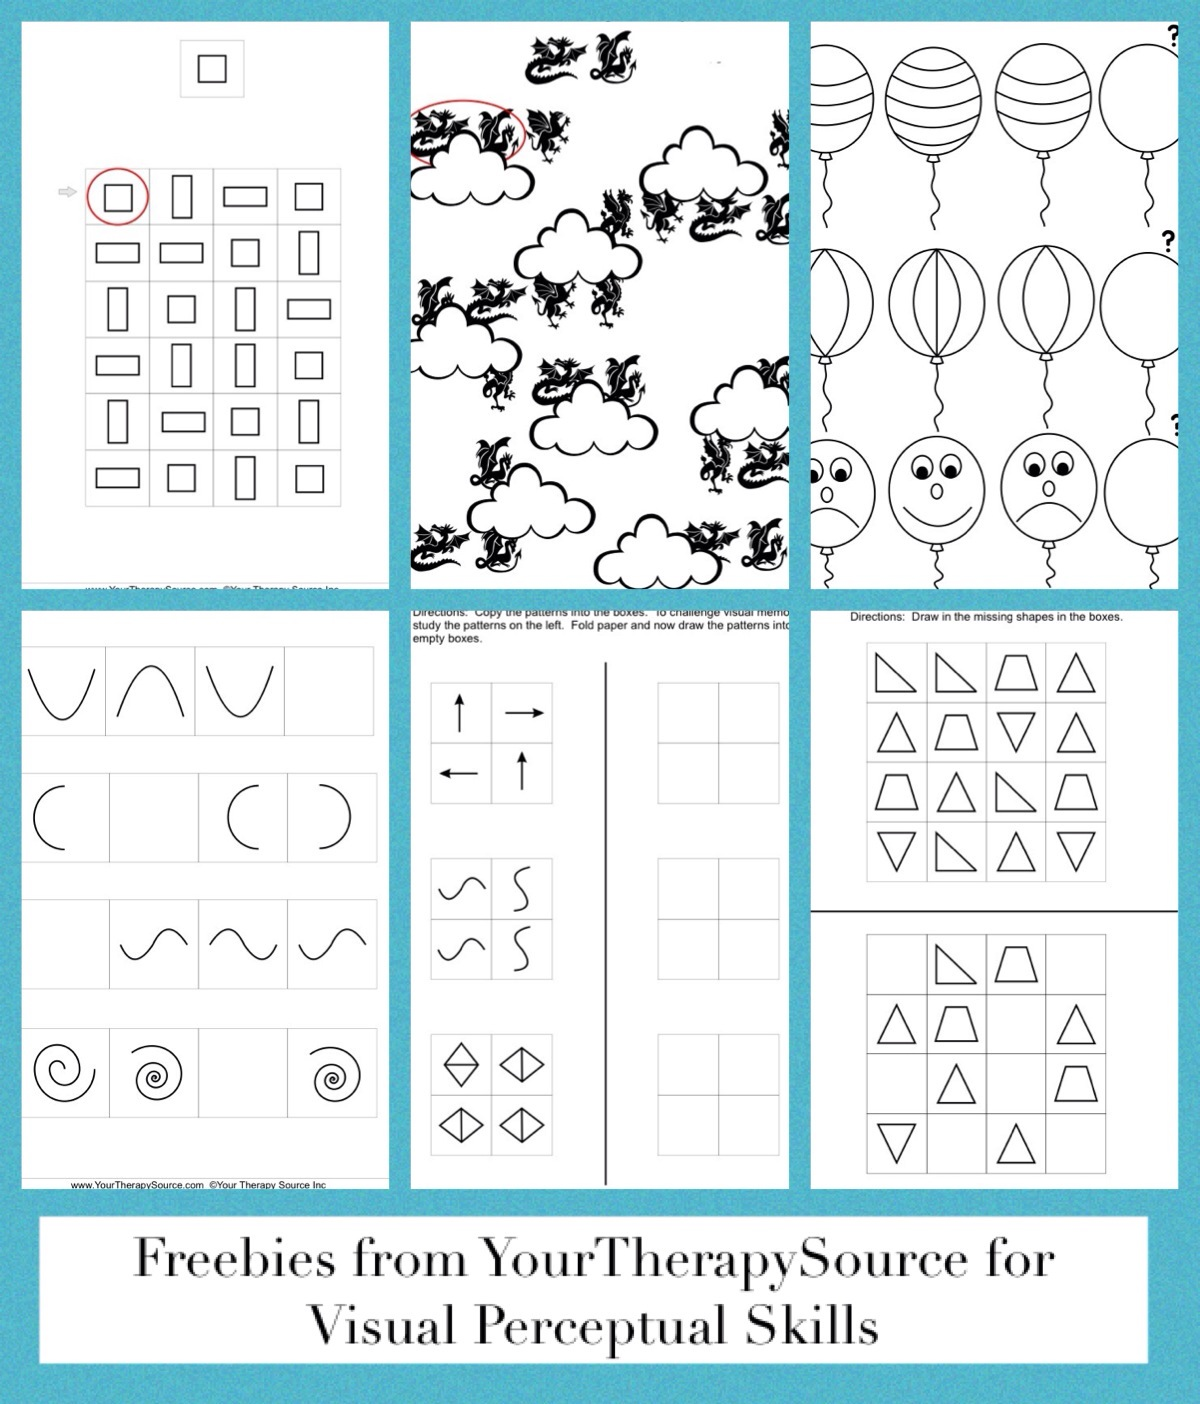 visual perceptual patterns freebie from https://www.yourtherapysource.com/patterns.html